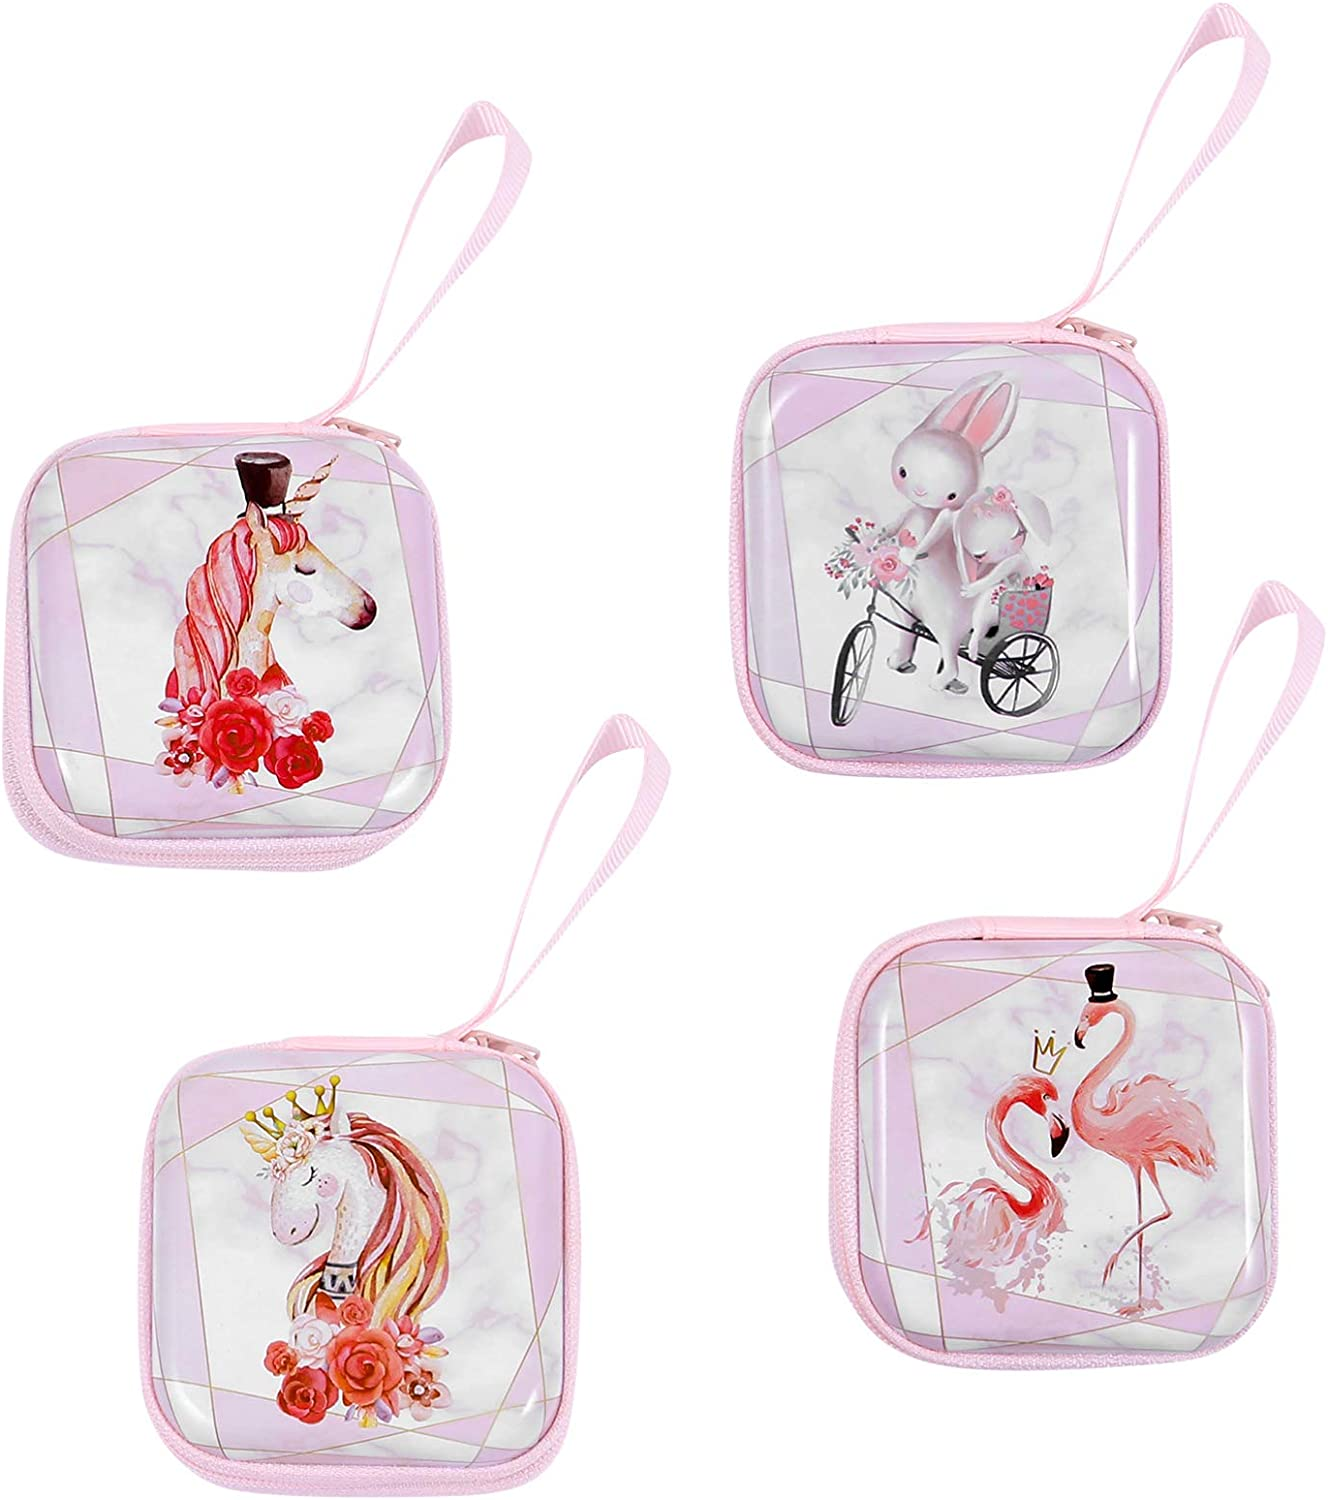 KESYOO 4pcs Unicorn Coin Purse Coin Pouch Girls Small Purse Change Clutch Make Up Bag Tote Wallet for Women Girl Kids Storage Mixed Color